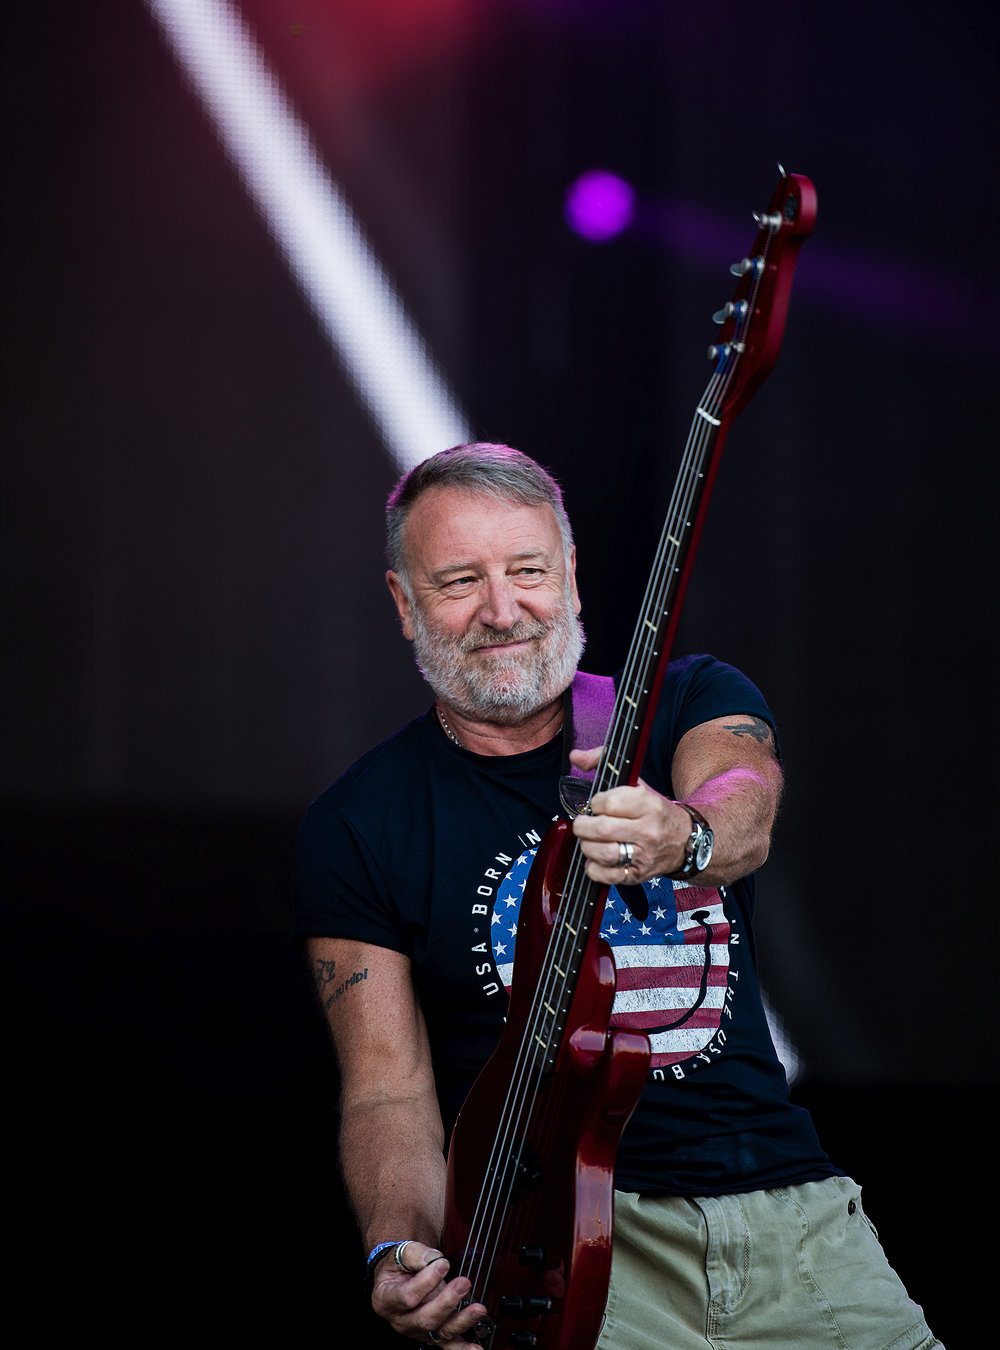 Peter-Hook-&-The-Light_Cool-Britannia-2018_by_Simon-Green(2).jpg